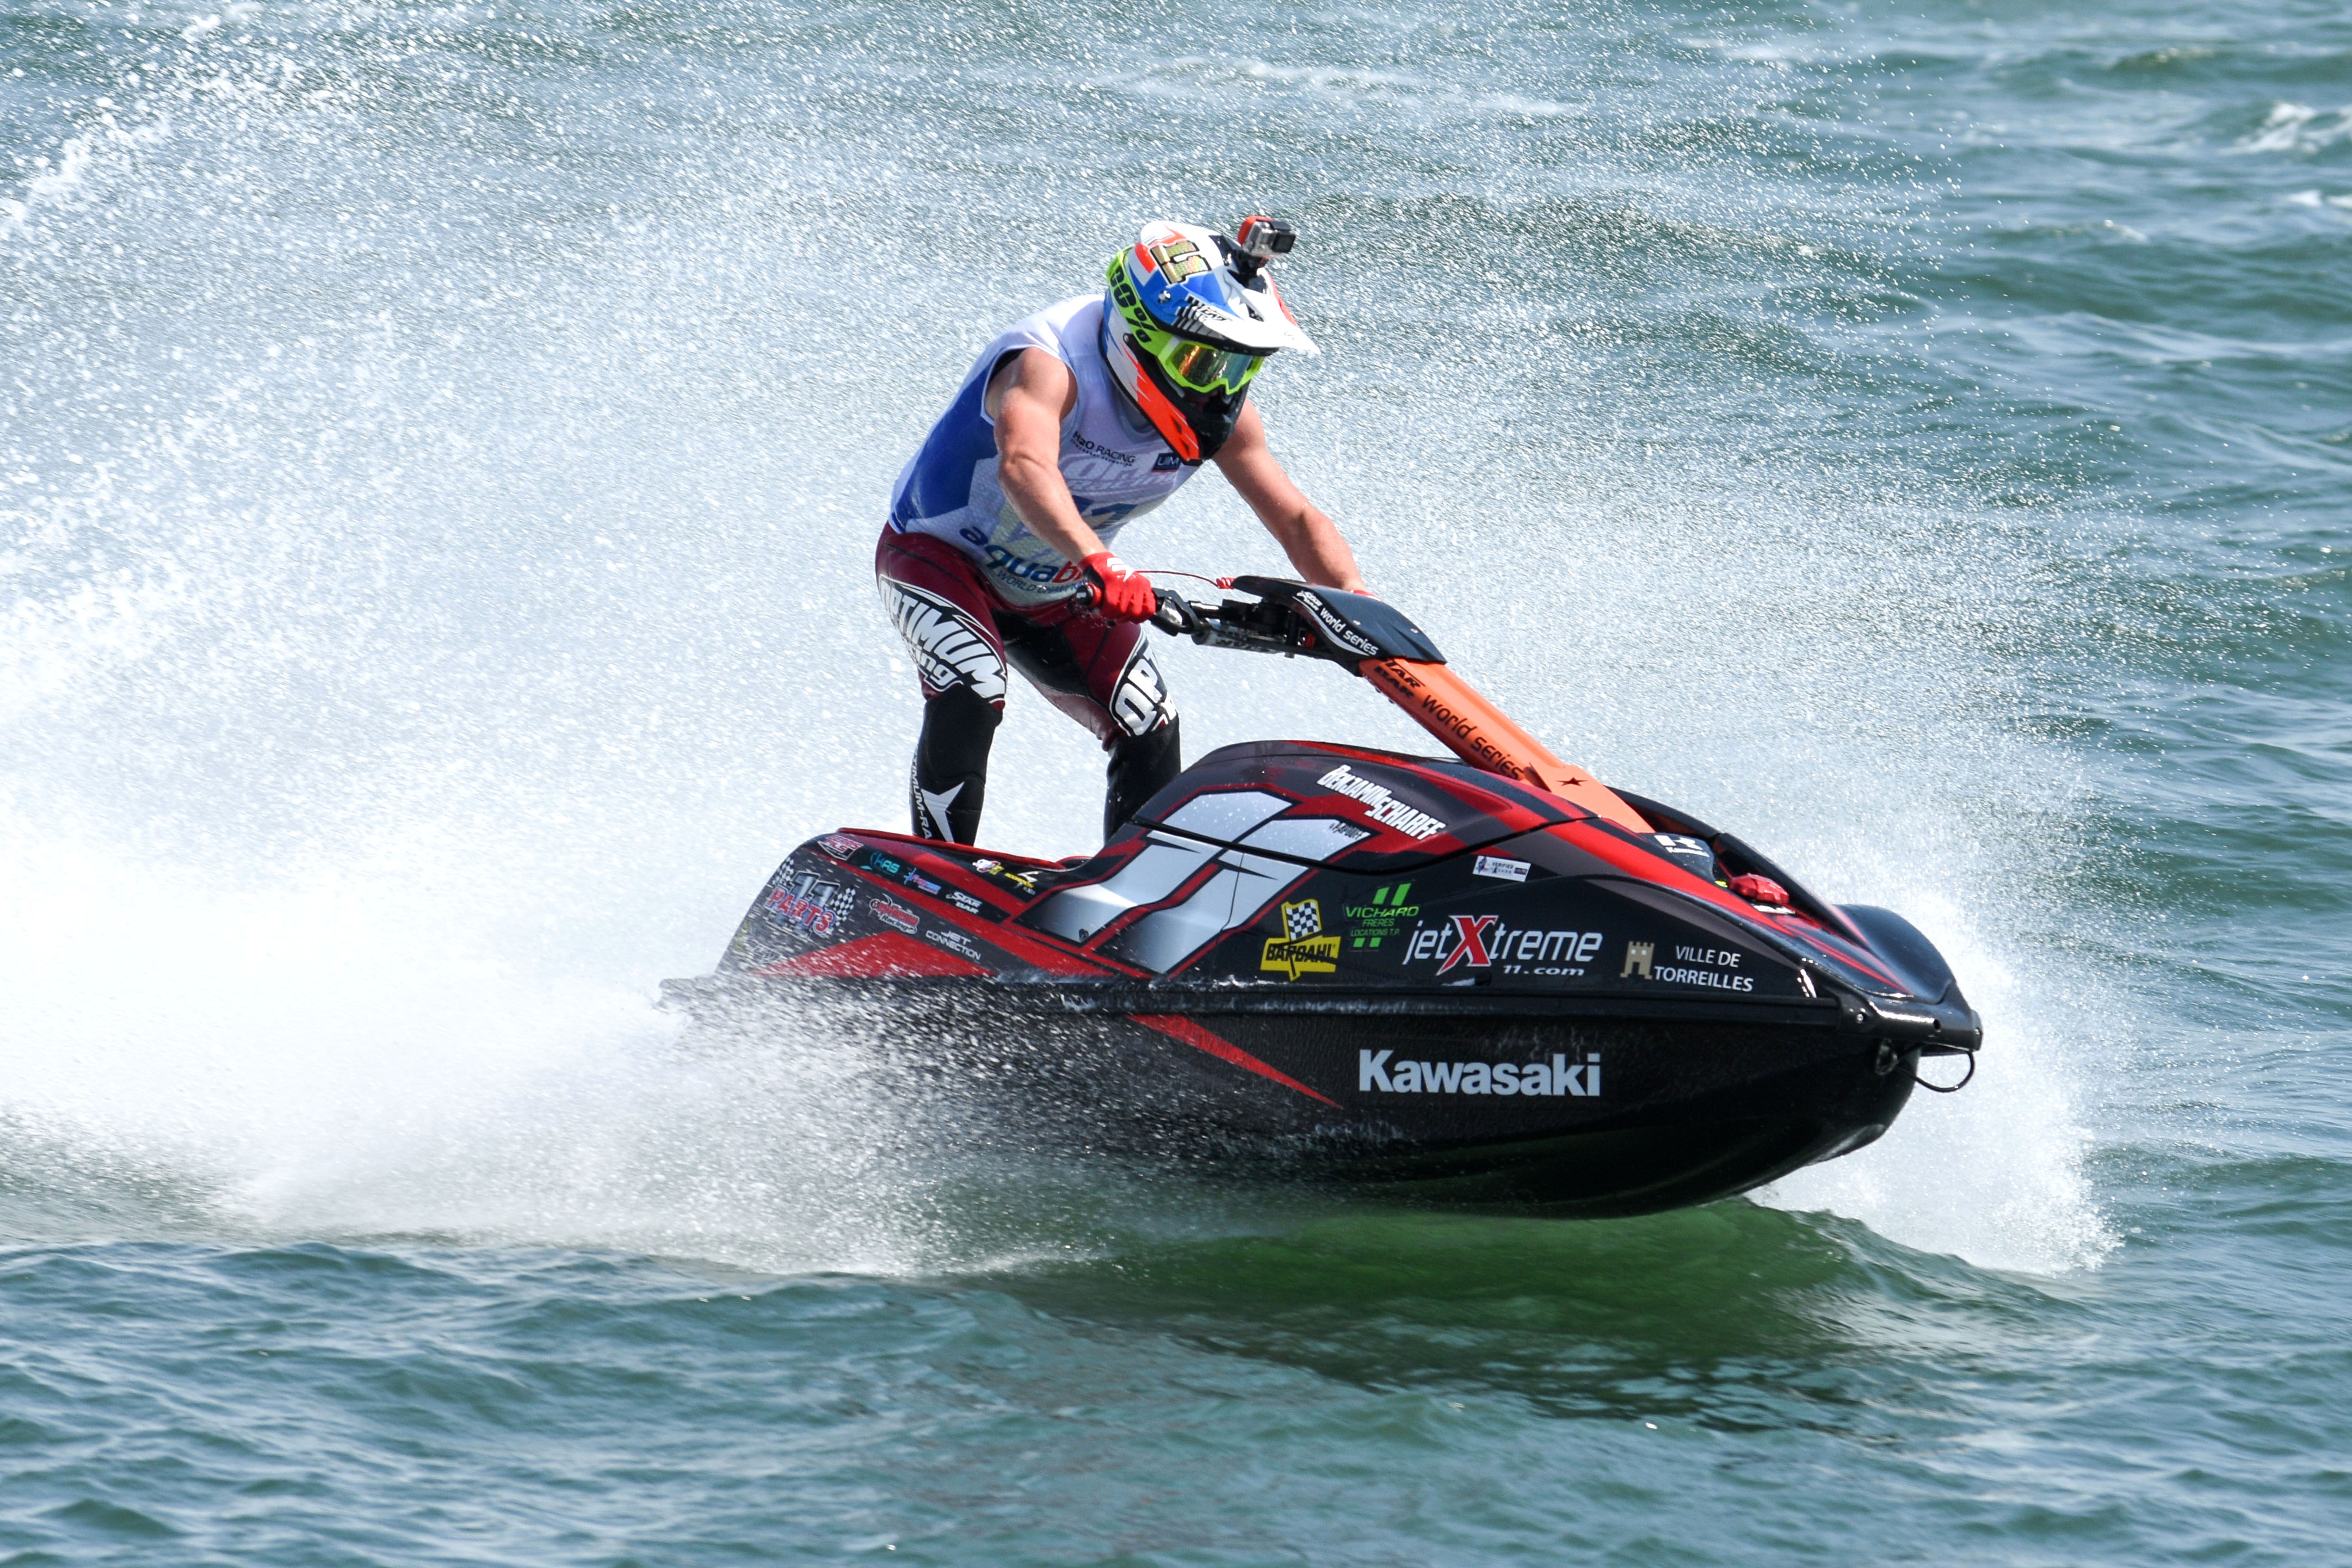 BENJAMIN SCHARFF TAKES UIM-ABP SKI GP2 WORLD TITLE